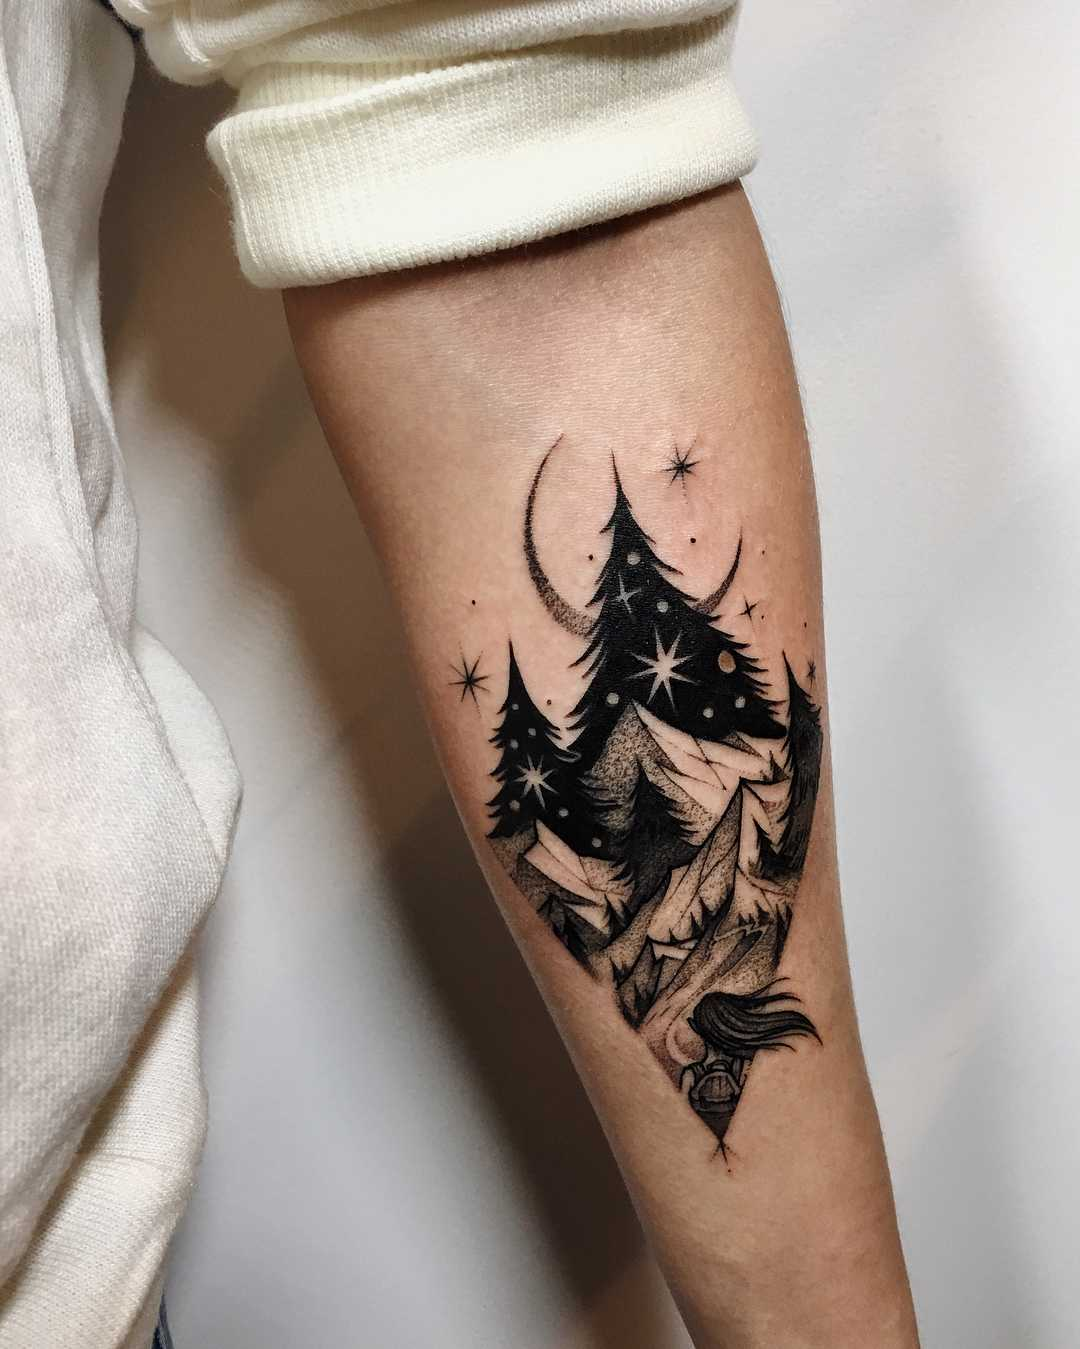 Beautiful black scenery tattoo by Sasha Kiseleva